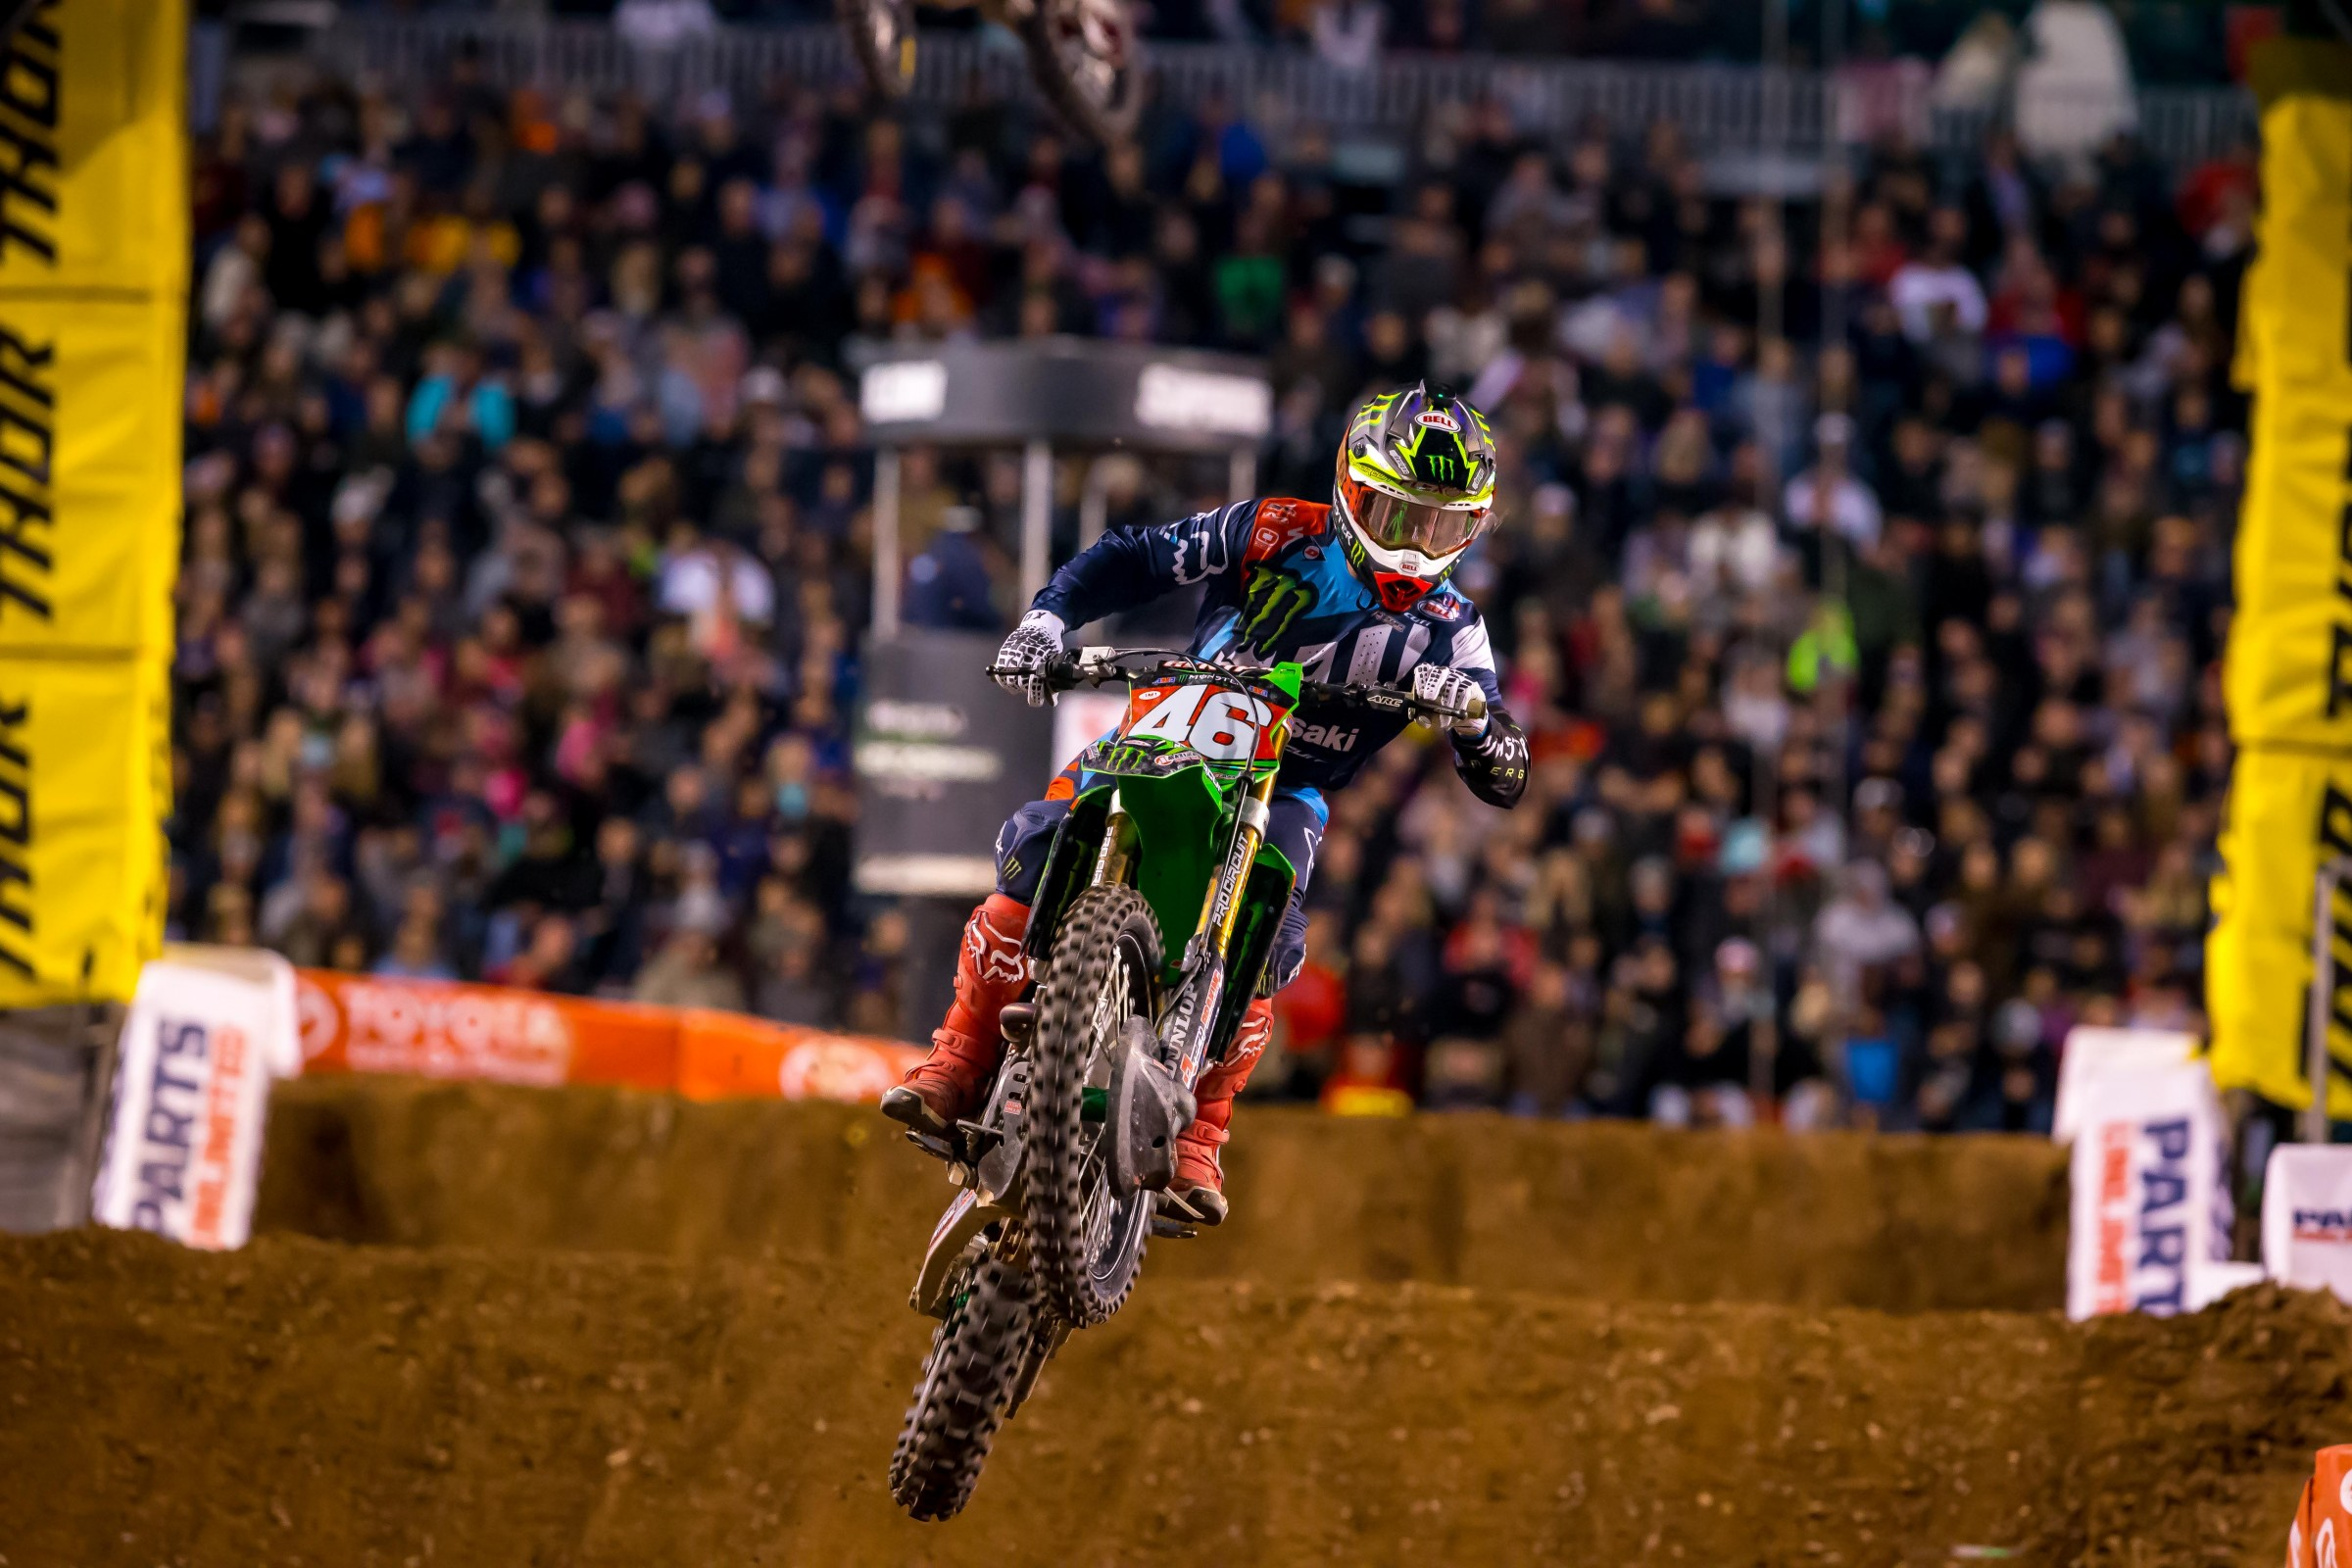 With more top-tier riders in the 250 class this weekend, it will be much harder to recover from a poor start.